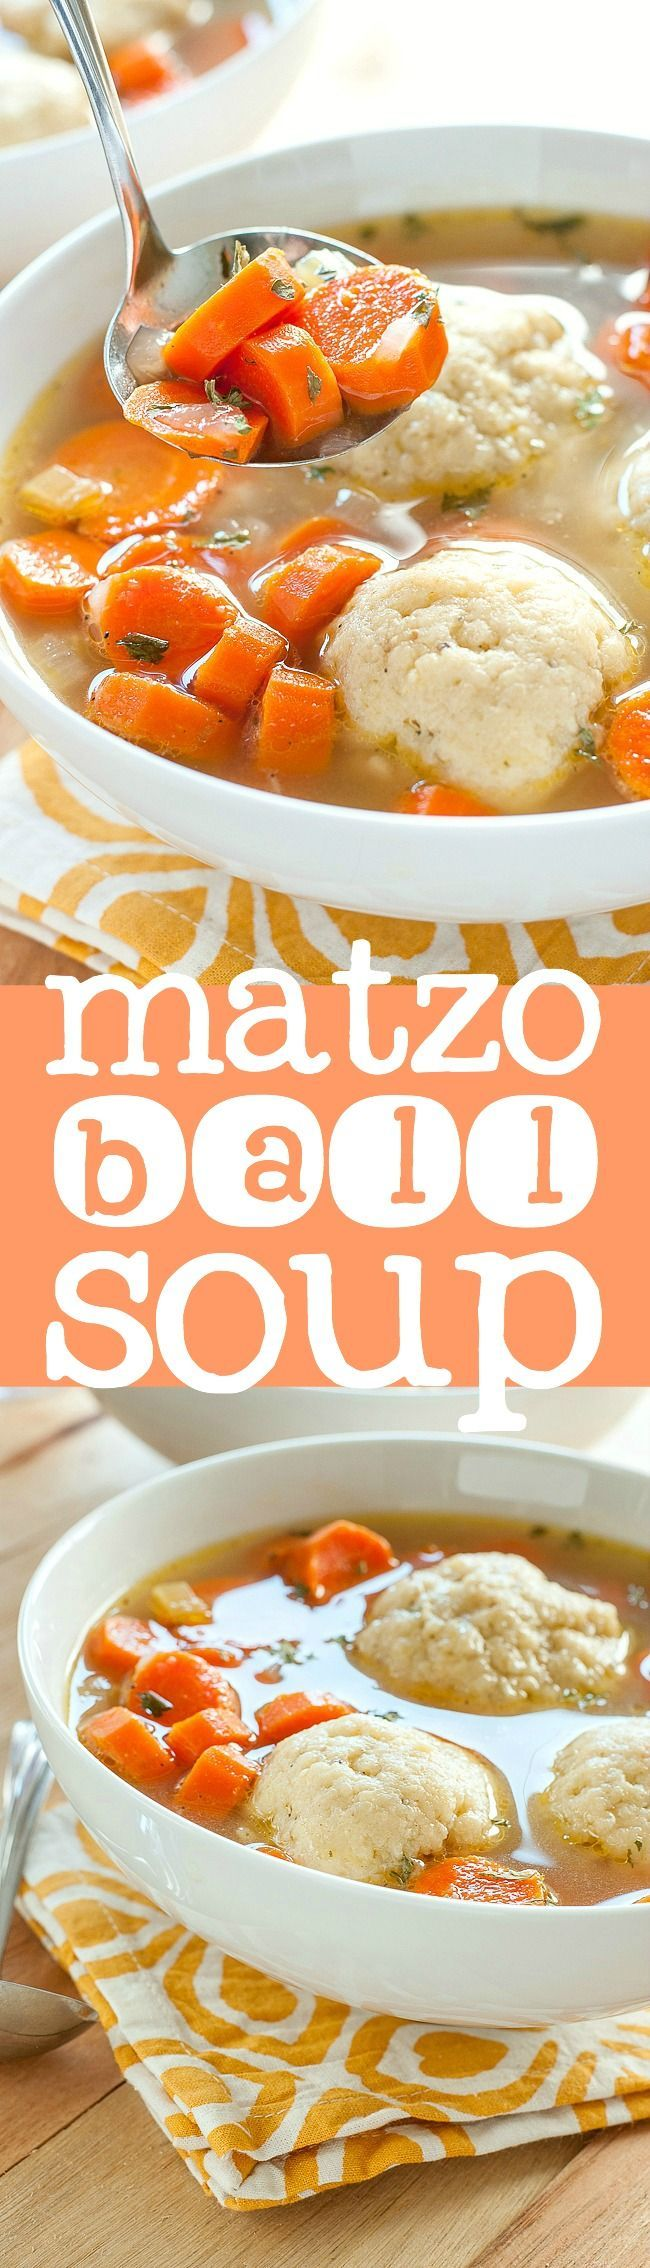 Homemade Matzo Ball Soup recipe